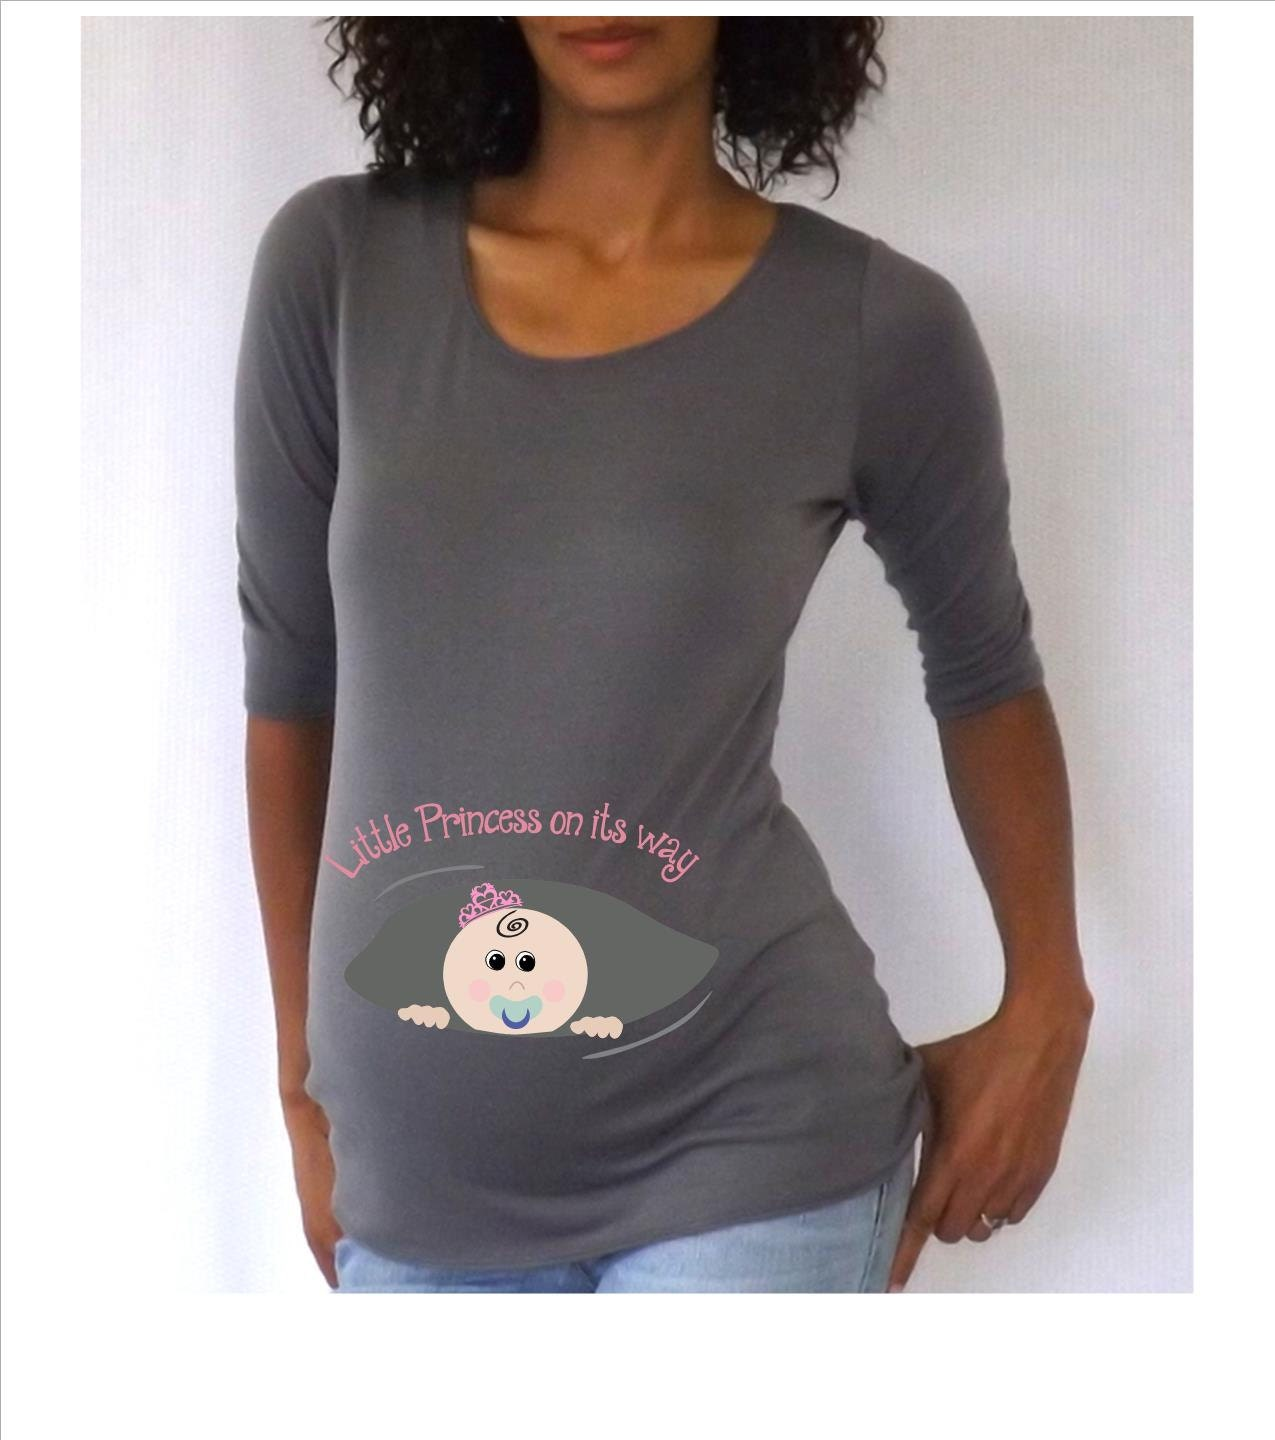 Find 's of maternity t-shirt designs and easily personalize your own maternity t-shirts online. Free Shipping, Live expert help, and No Minimums.